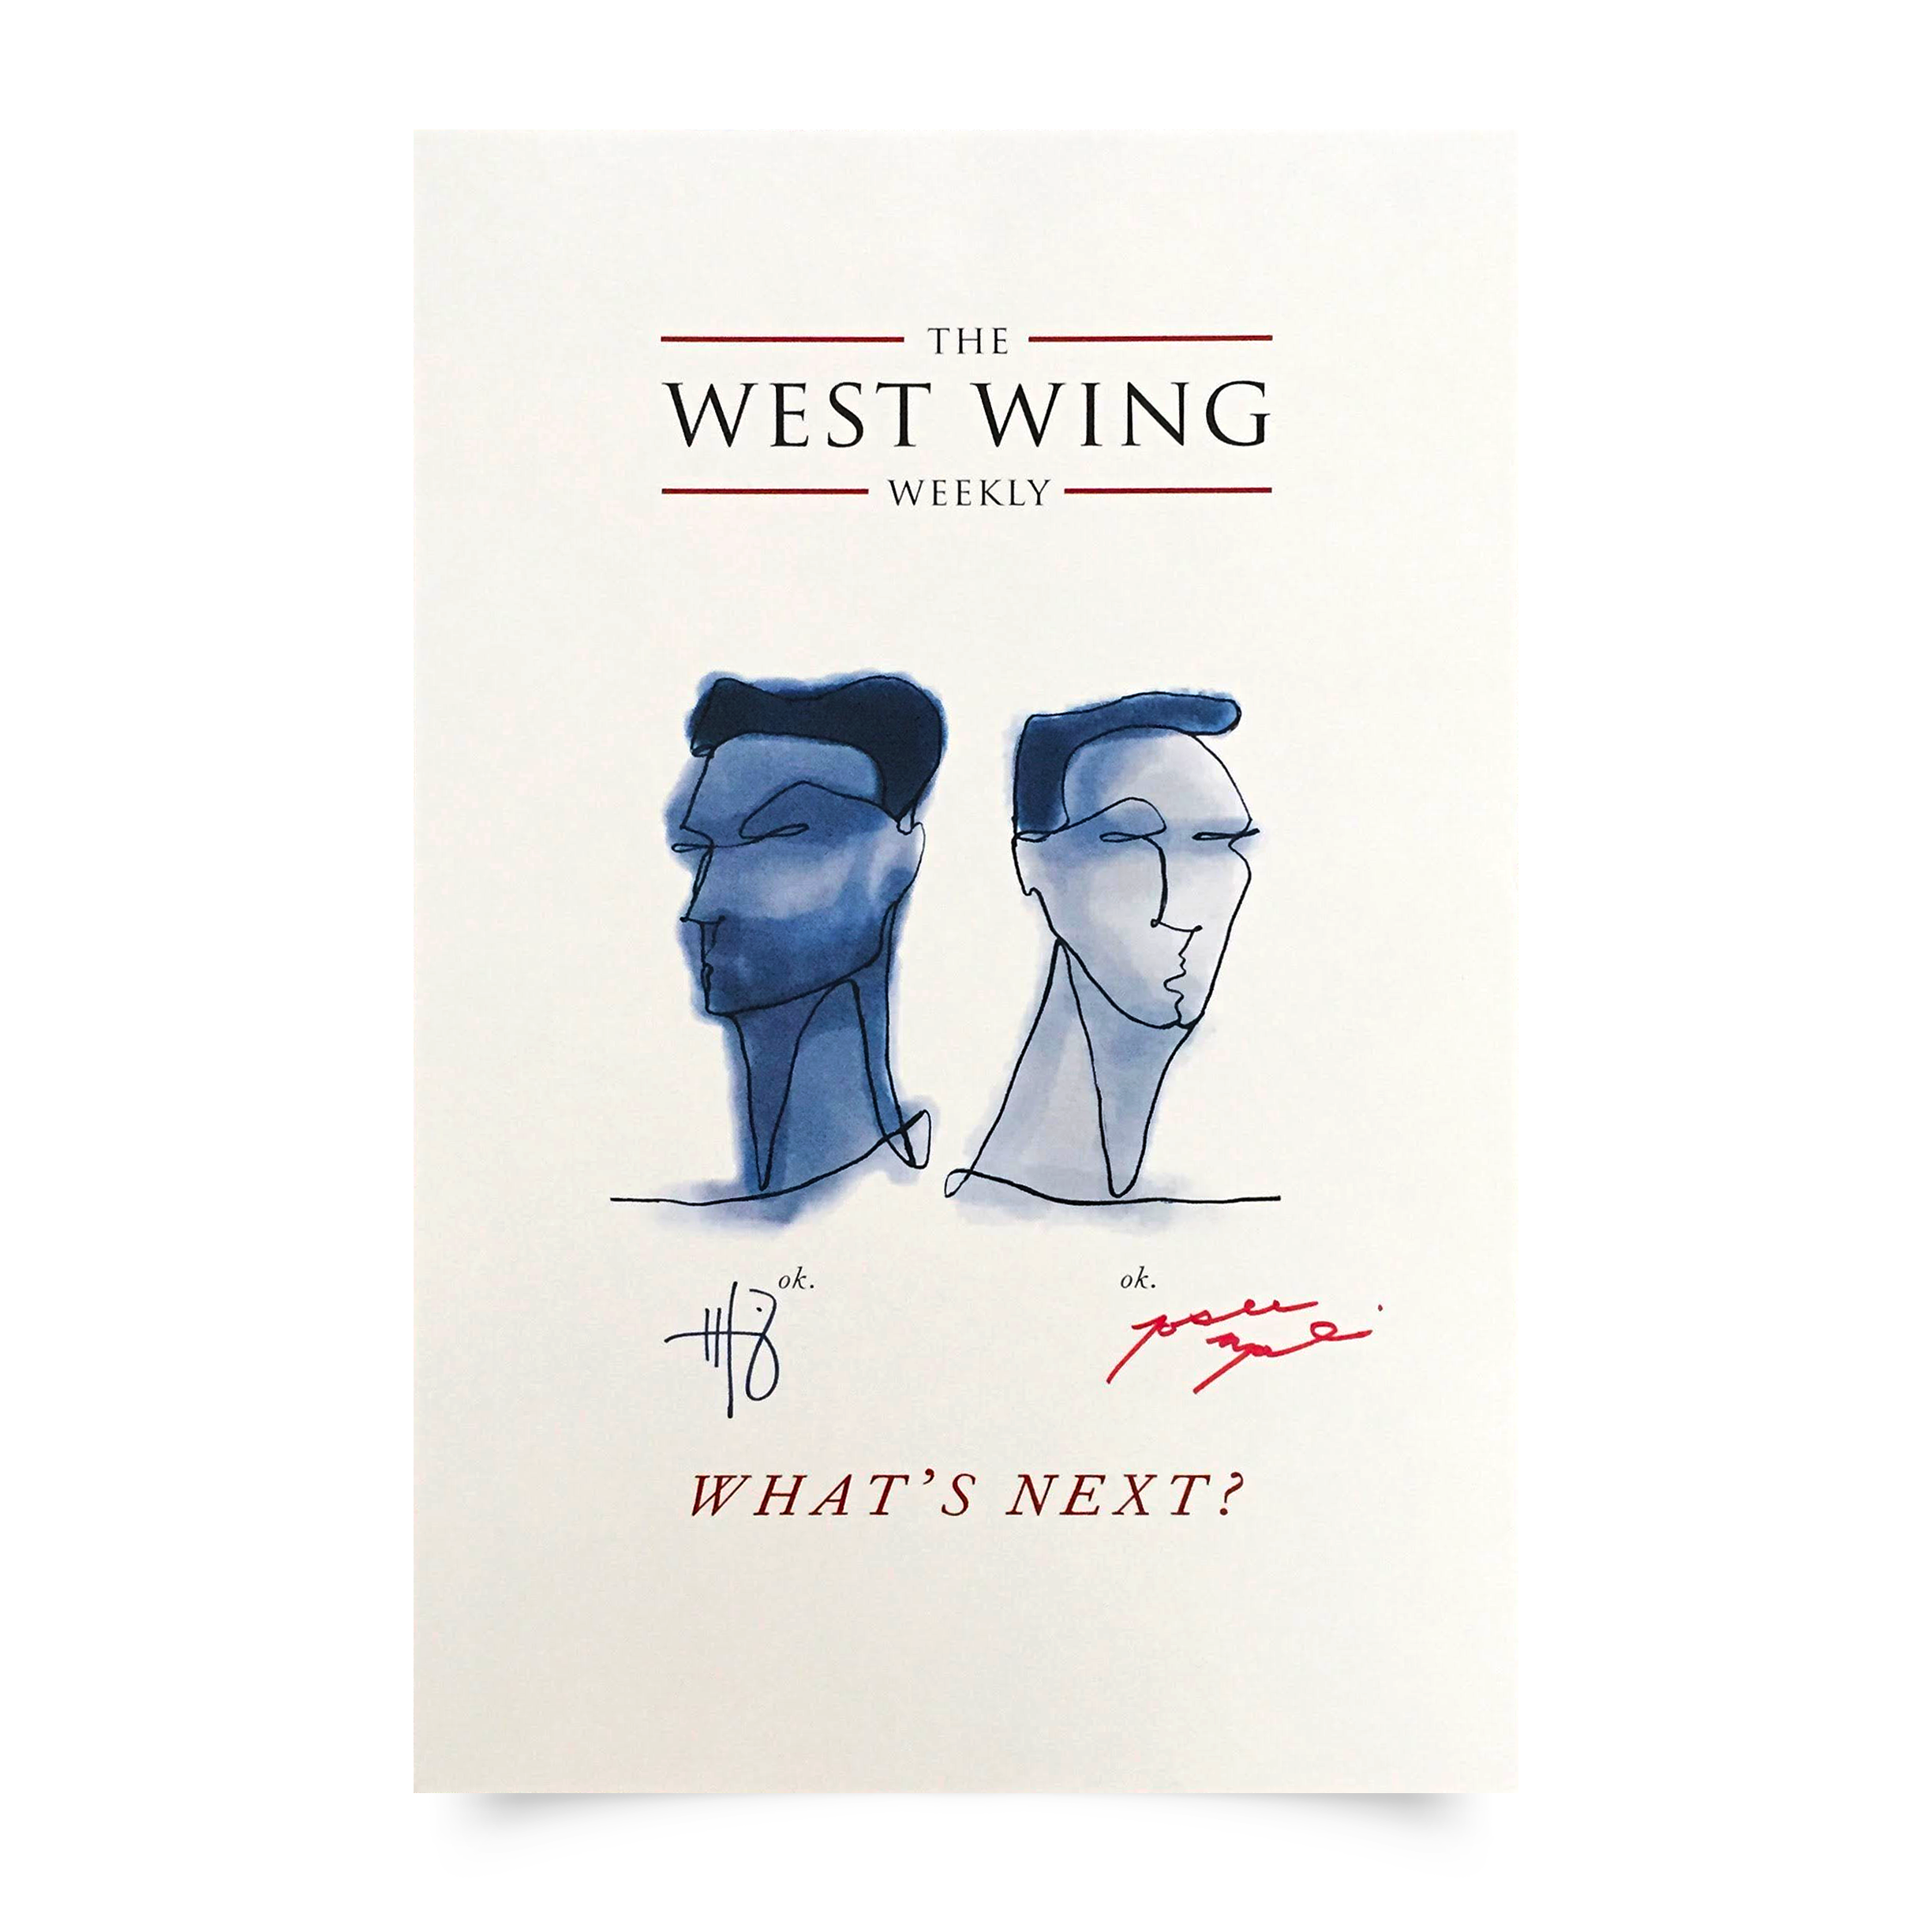 The West Wing Weekly Poster